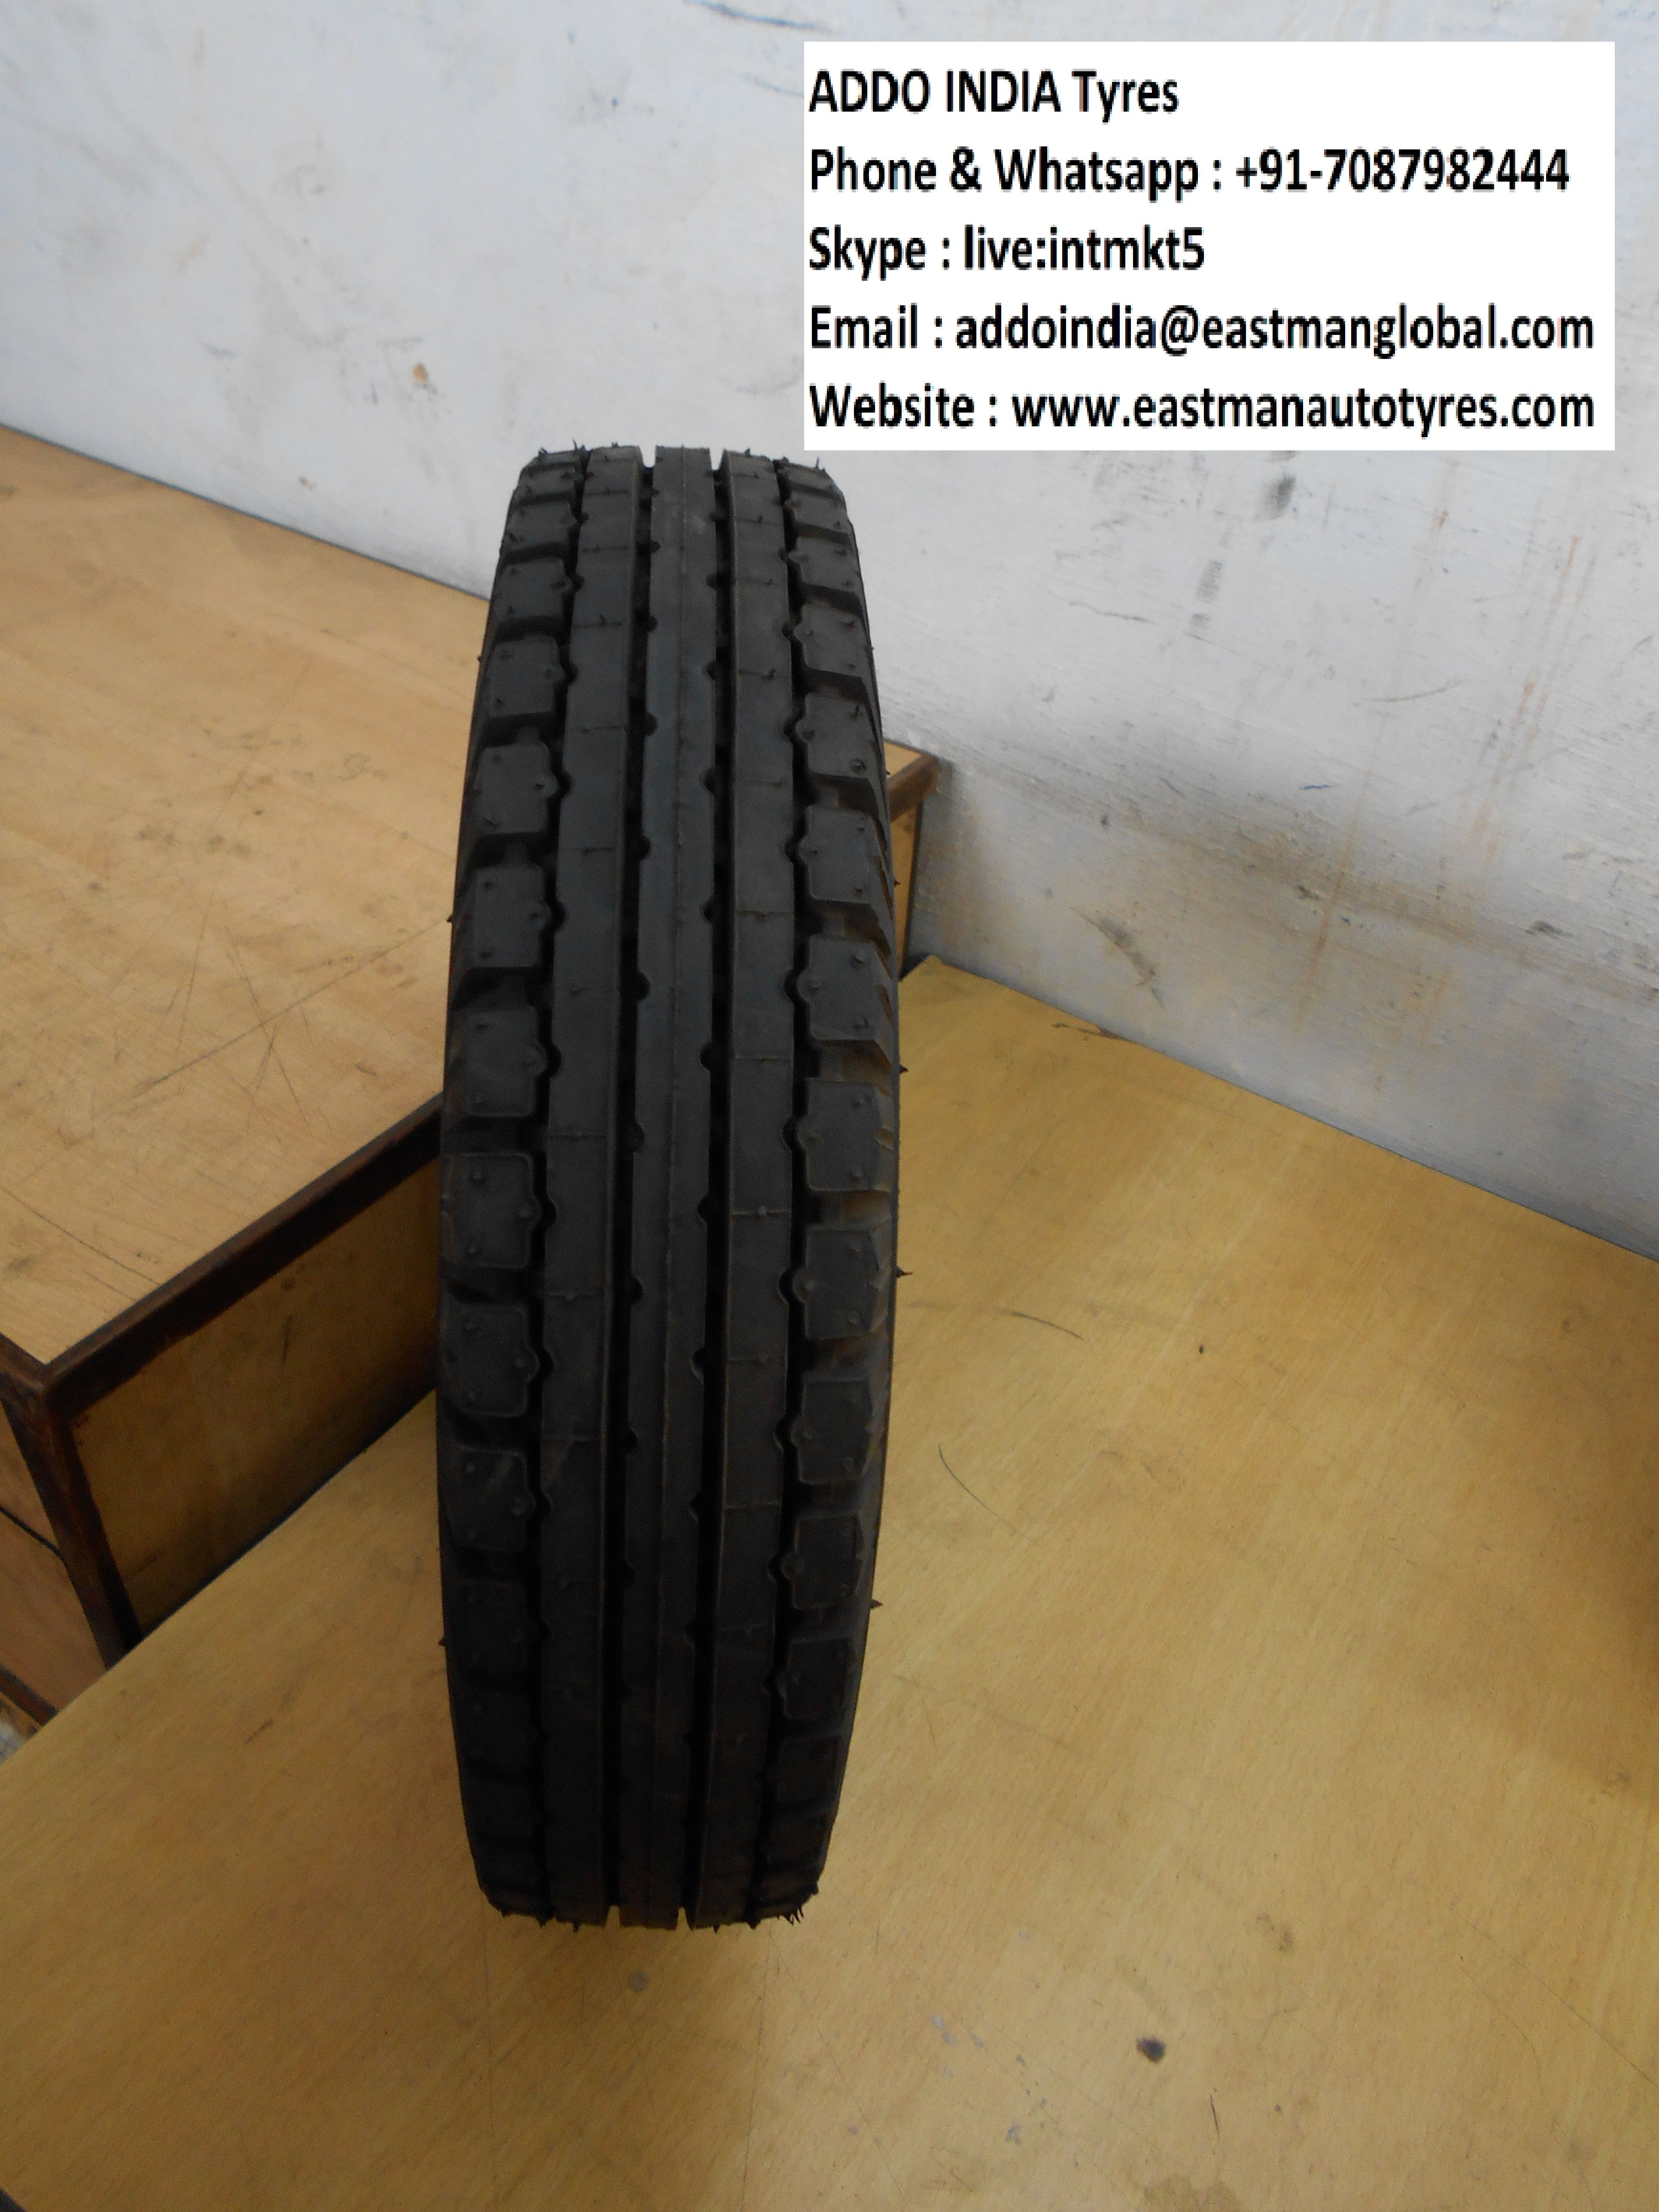 Addo India Tyres Tire Addo Truck Tyres